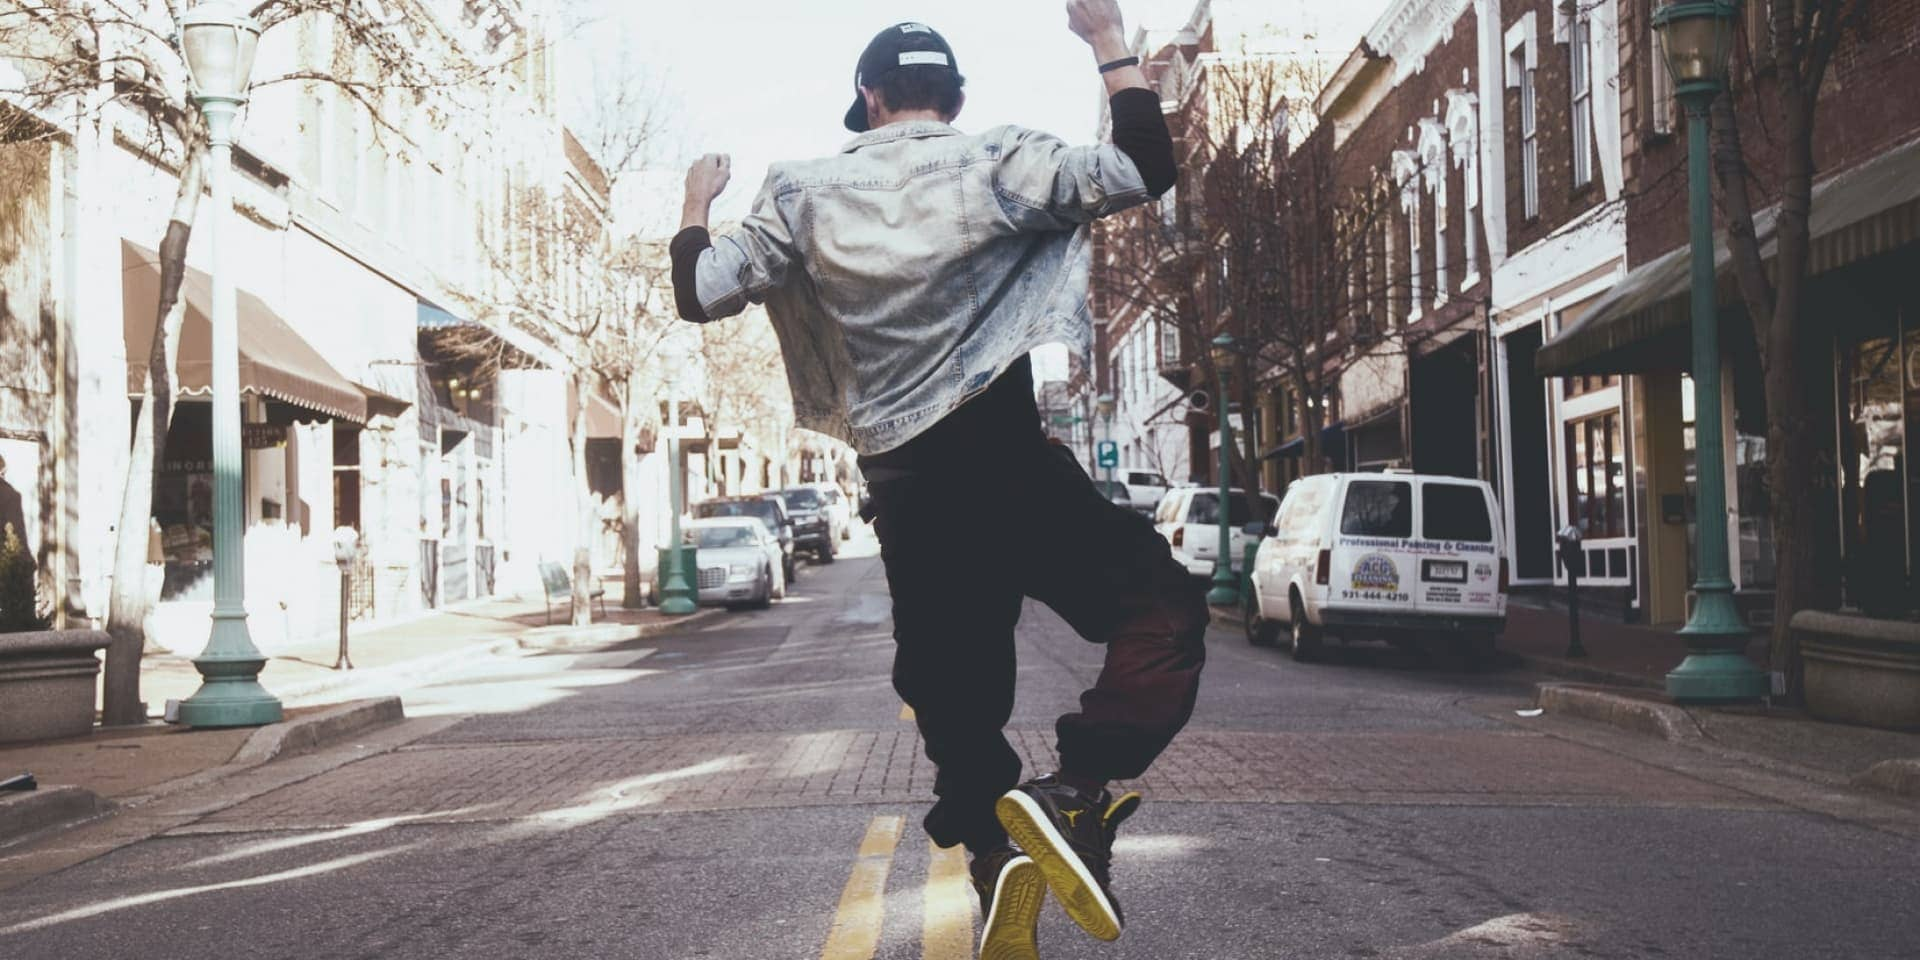 Man Jumping In the Street, by Andre Hunter from Unsplash